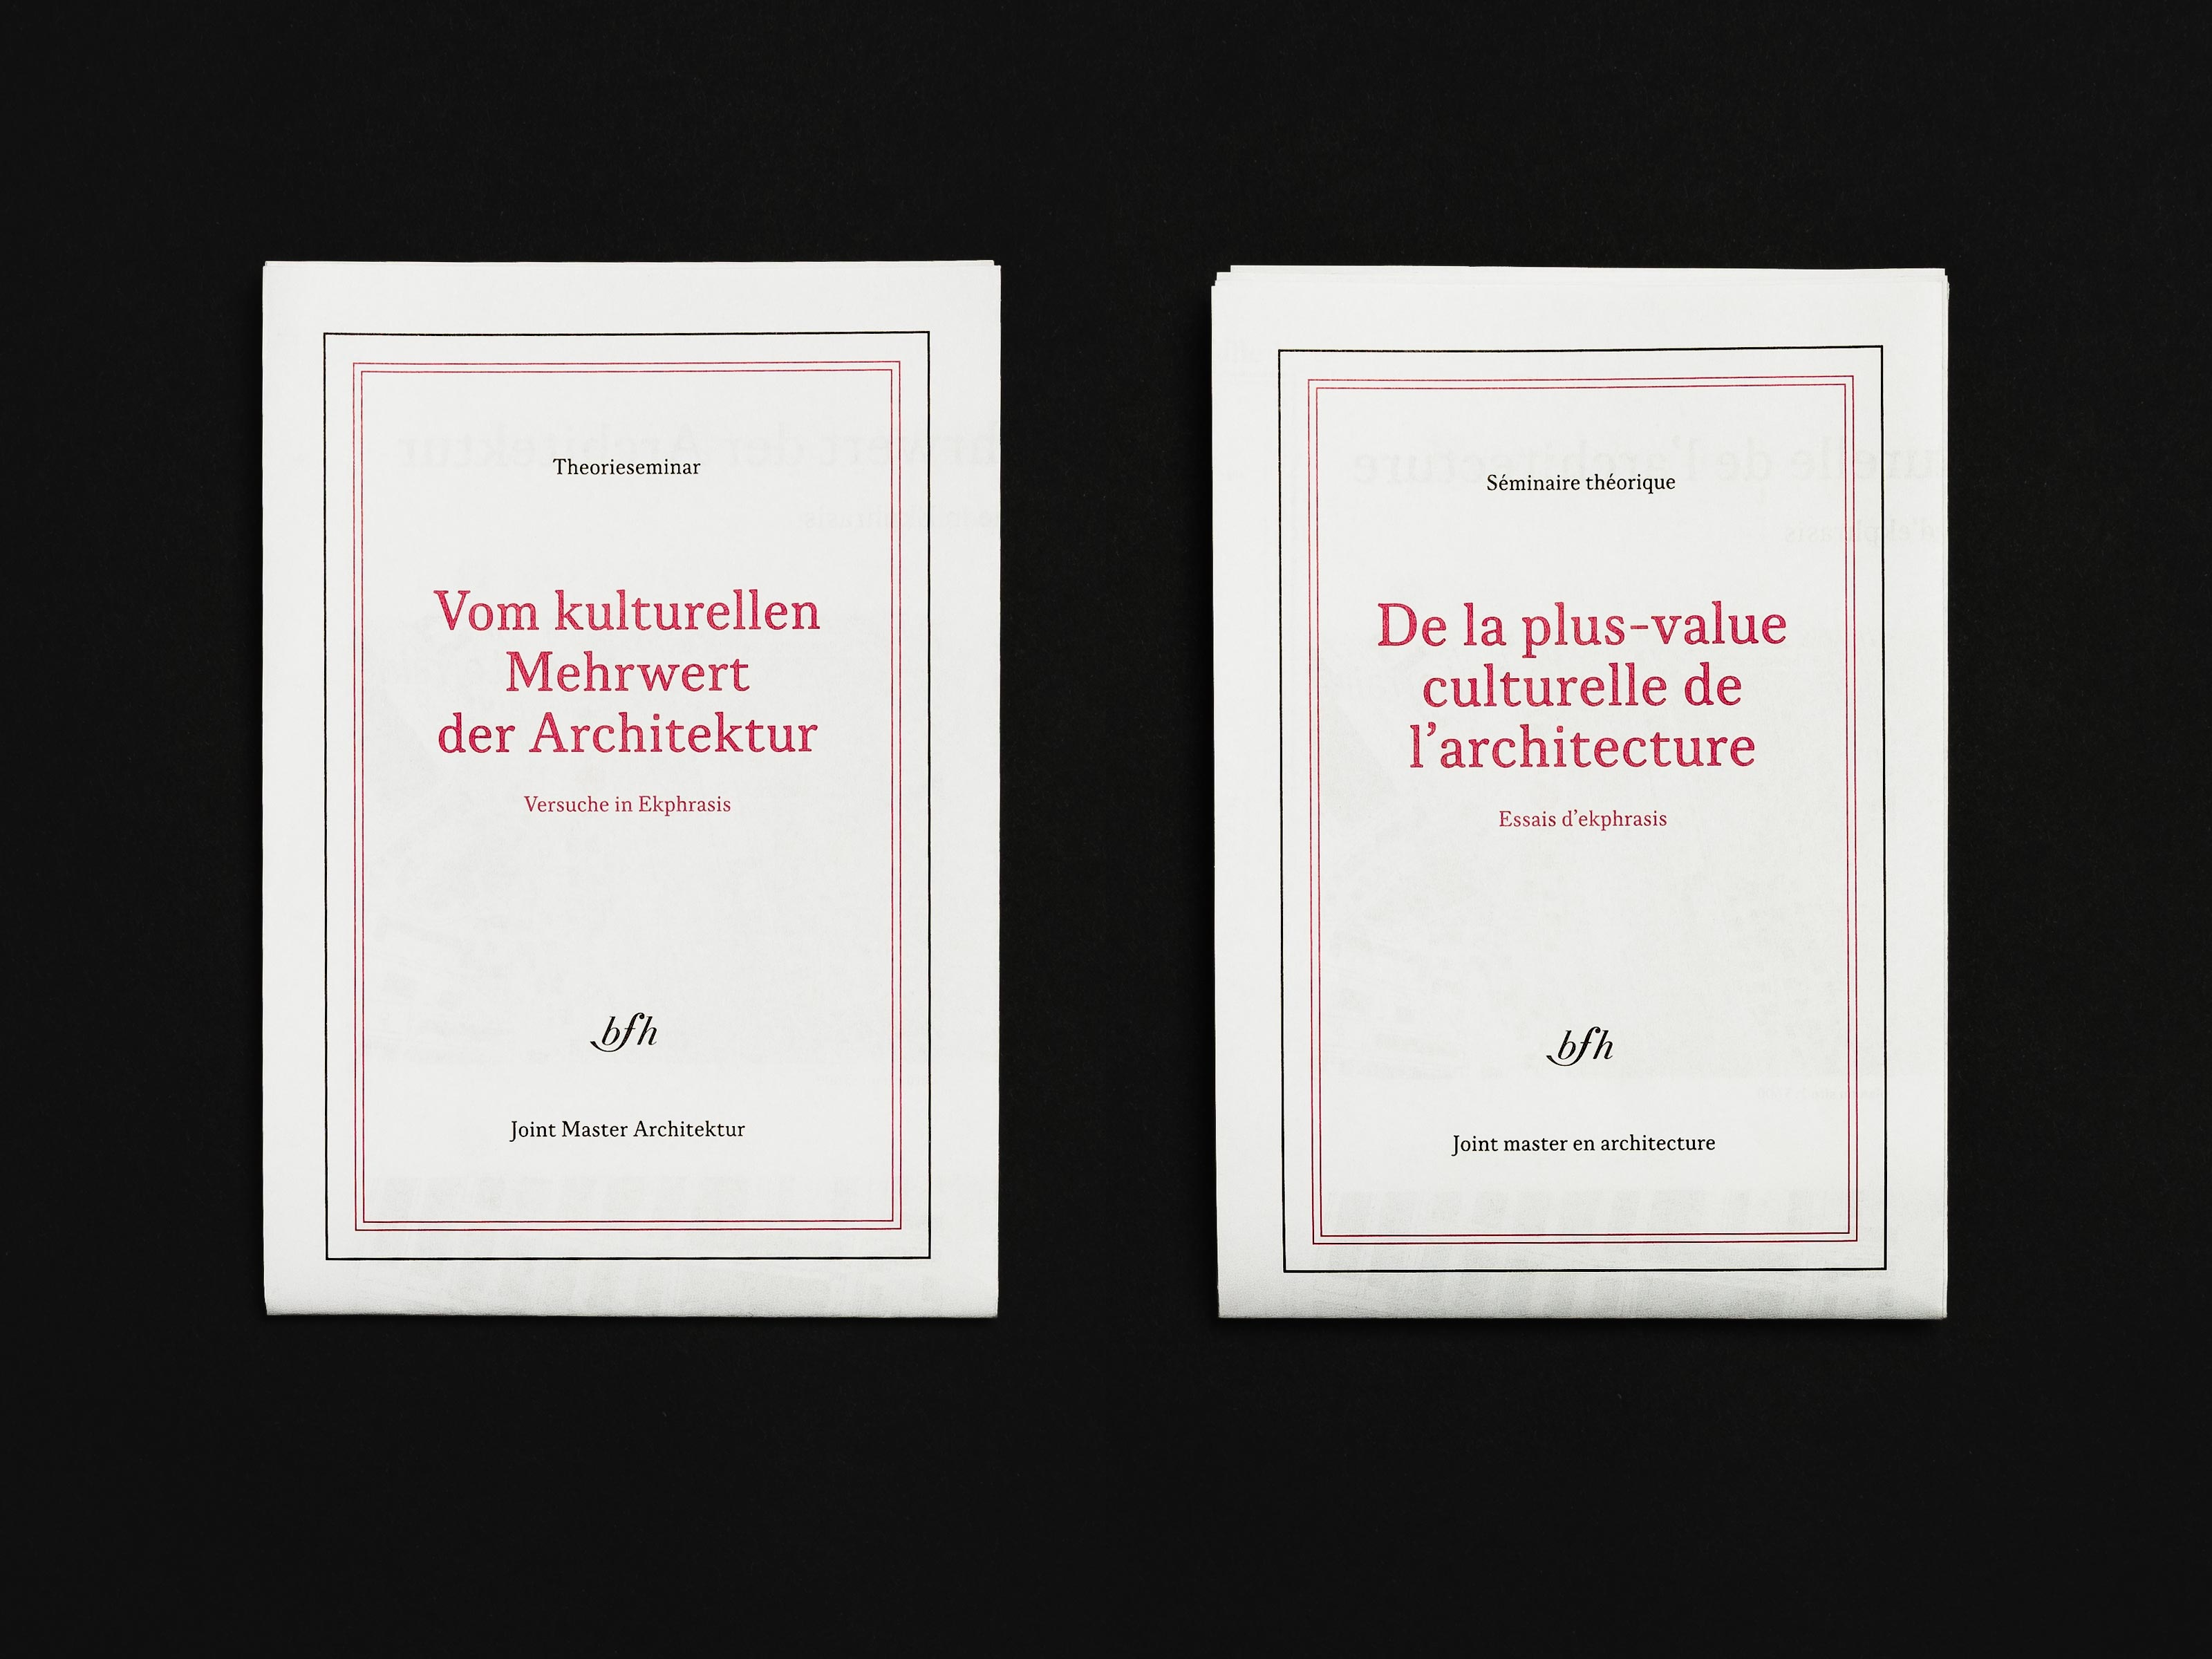 Berner Fachhochschule – Joint Master in Architecture - map, front ©Atelier Pol × Barbara Hess